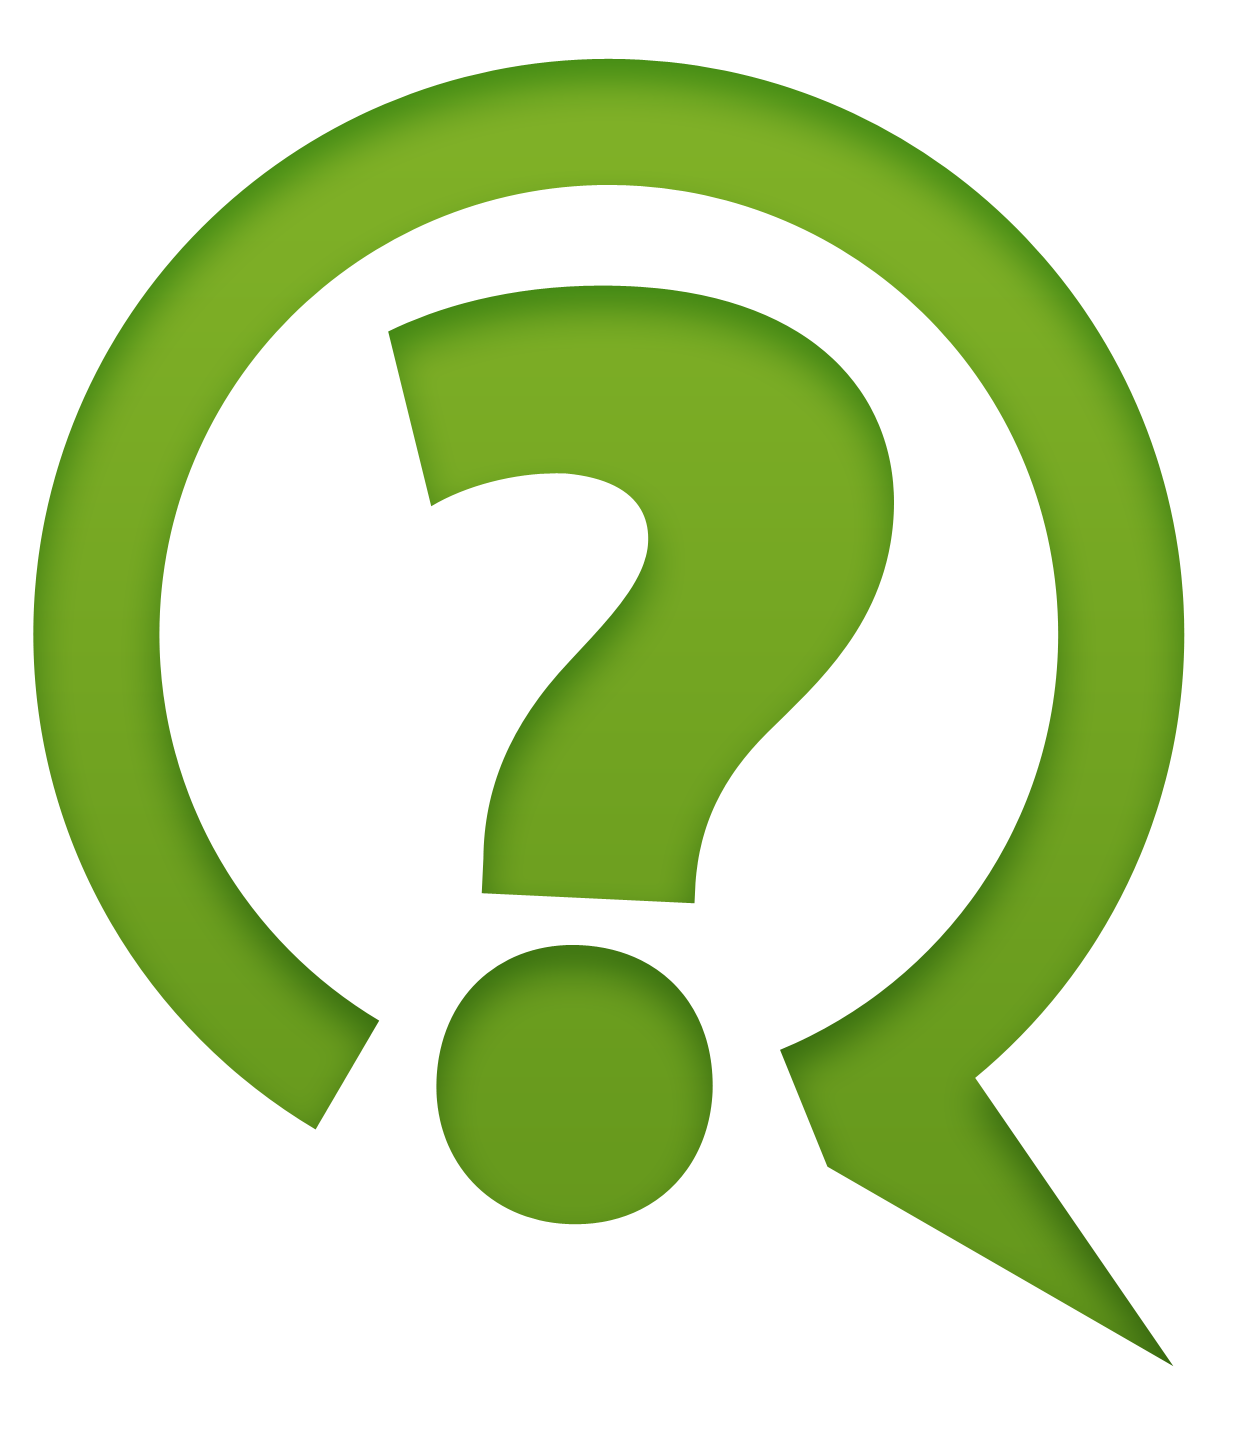 Green Question Mark Icon Png ClipArt image #41640